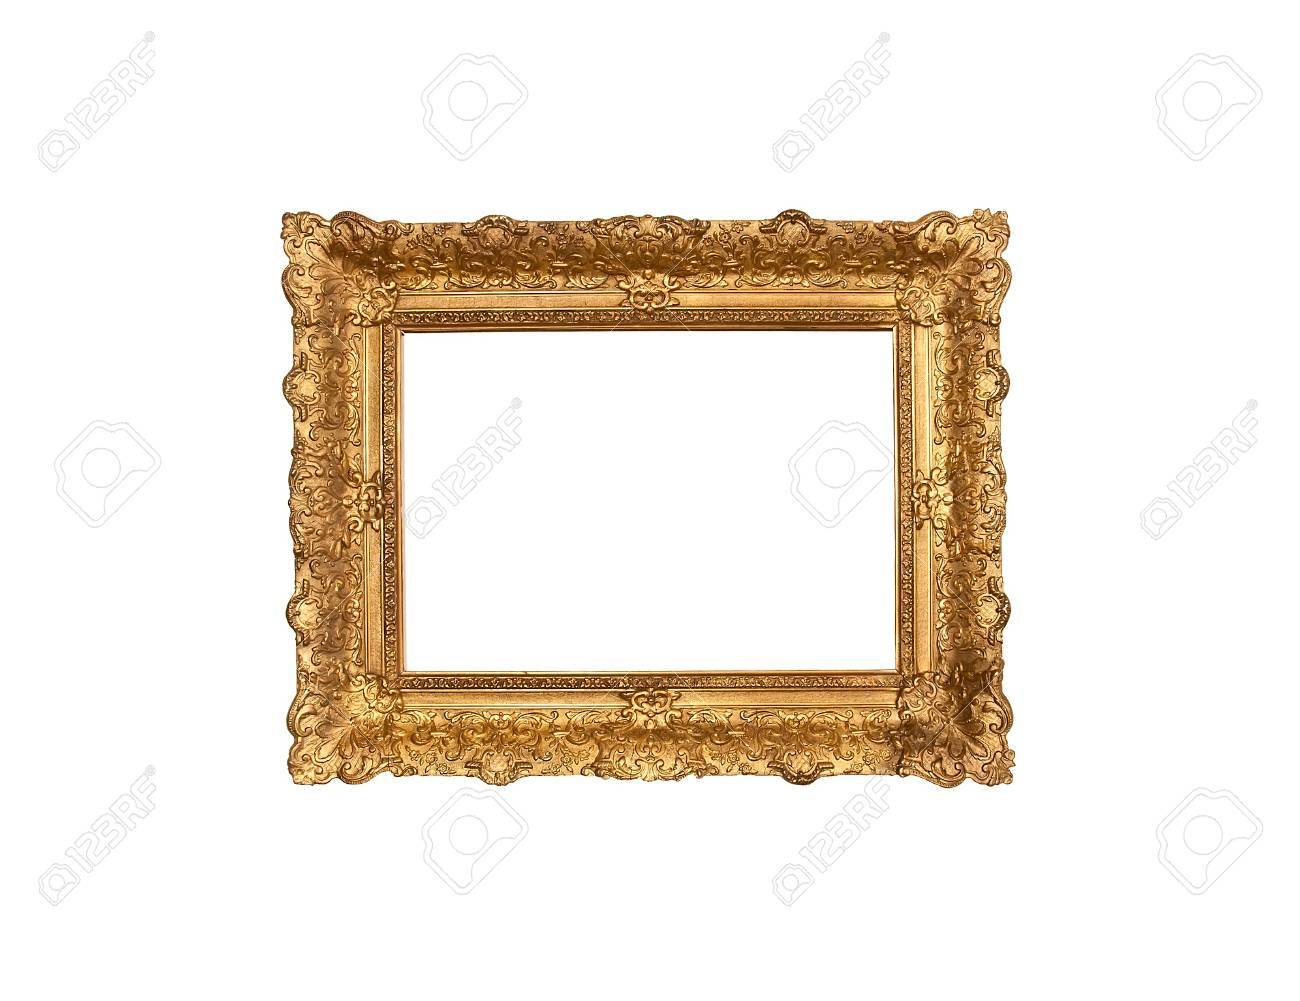 An old italian wood frame with rich plaster engravings and gold painted - 43791886